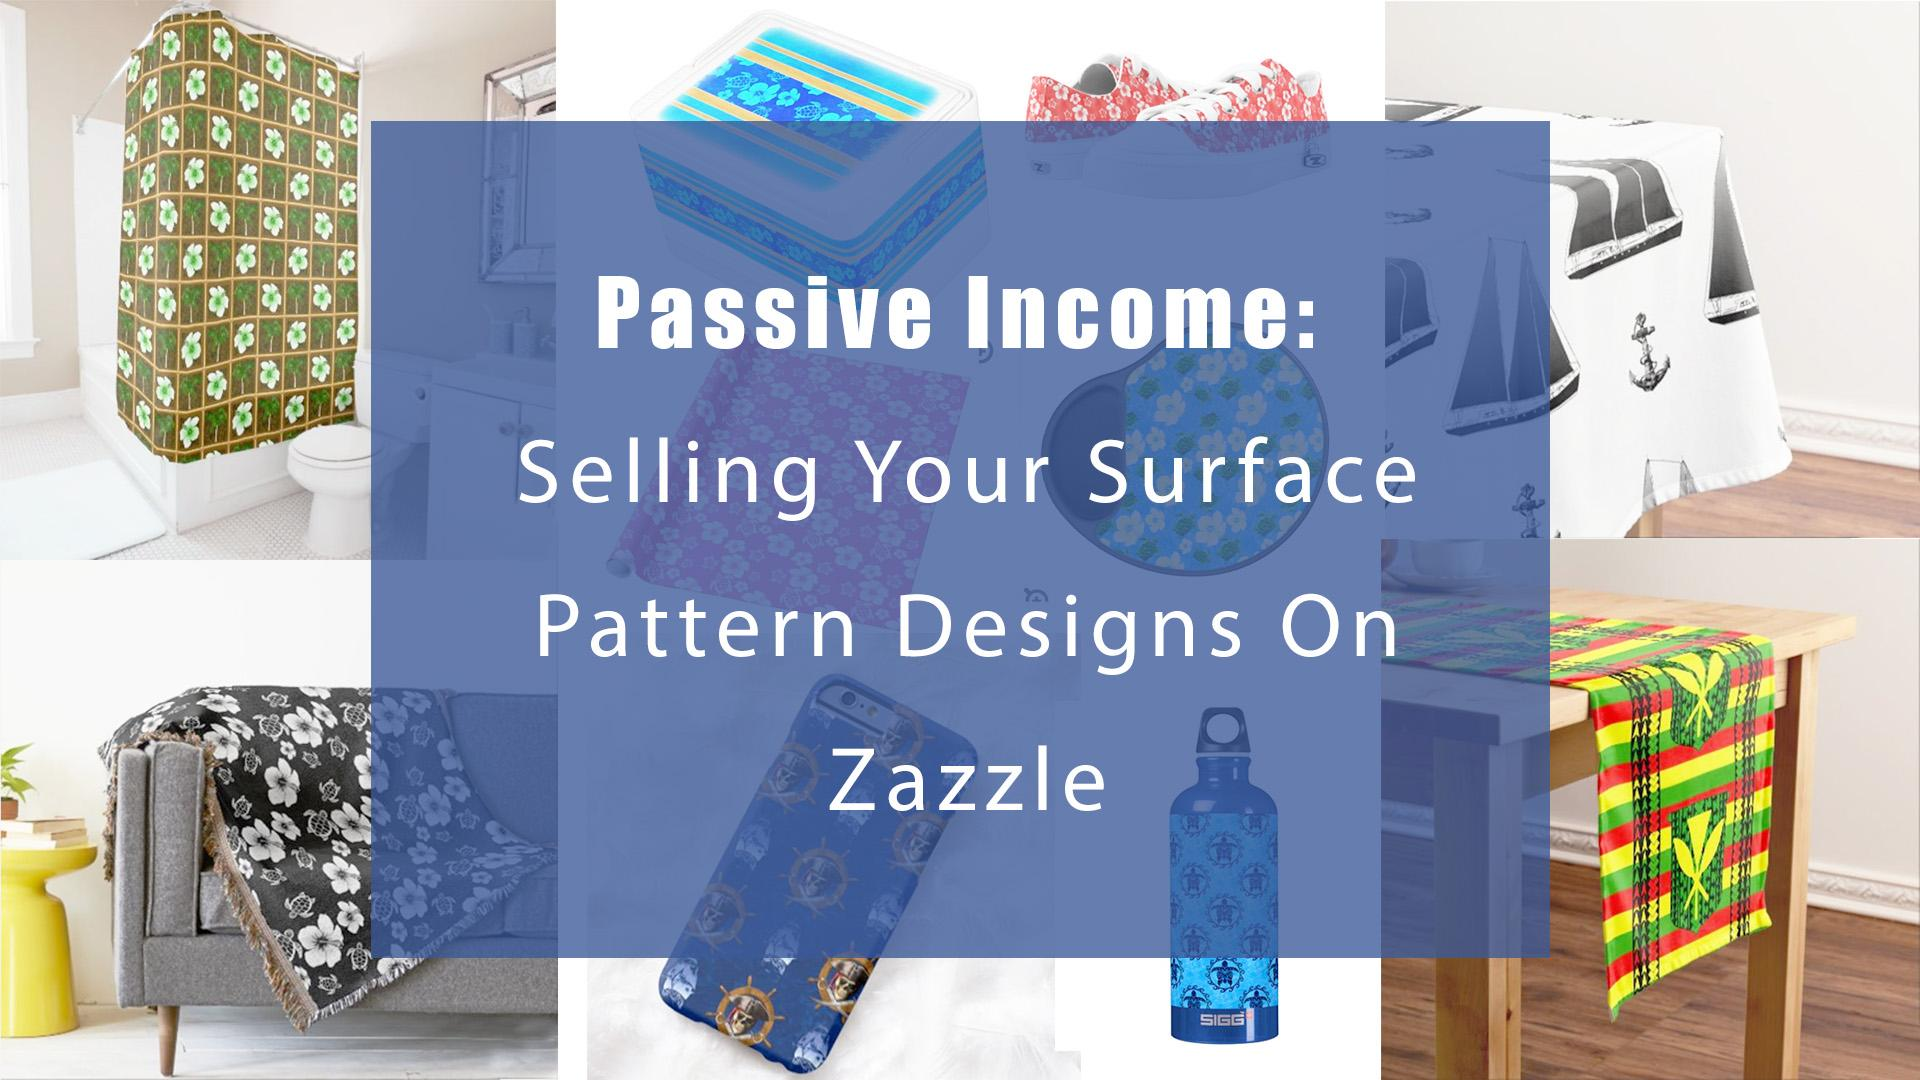 Welcome Surface Pattern Designers U0026 Visual Artists! Learn How To Make  Passive Income By Selling Your Art Without Your Own Website, Agent, Or  Licensing ...